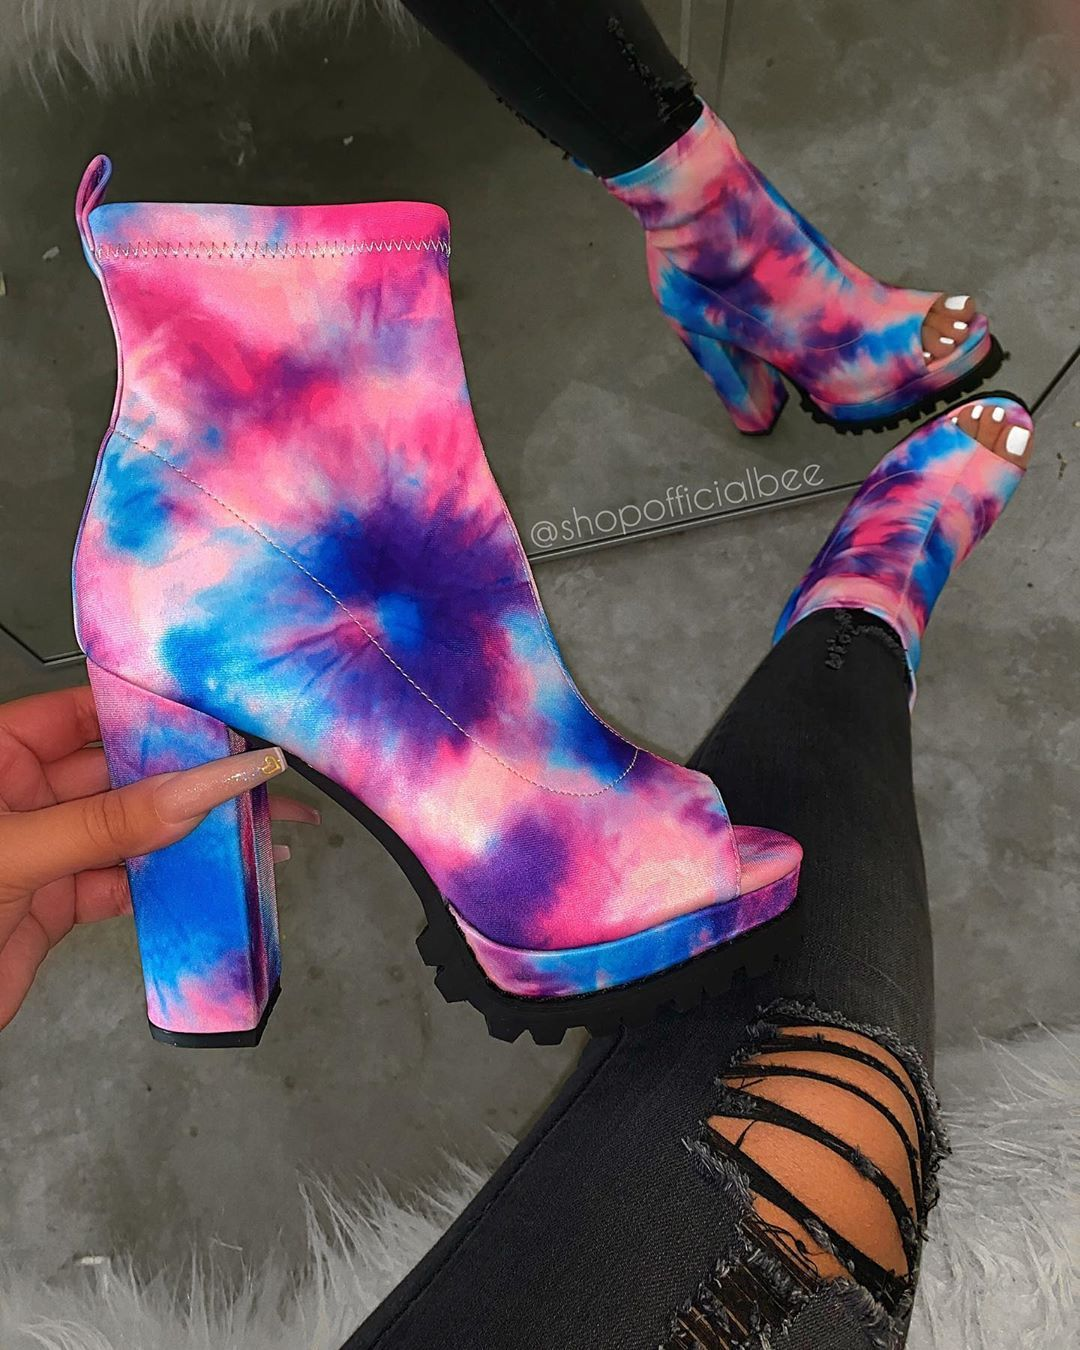 Pin by Kyrstn Batts on ♡Shoes♡ in 2020 Cute shoes heels